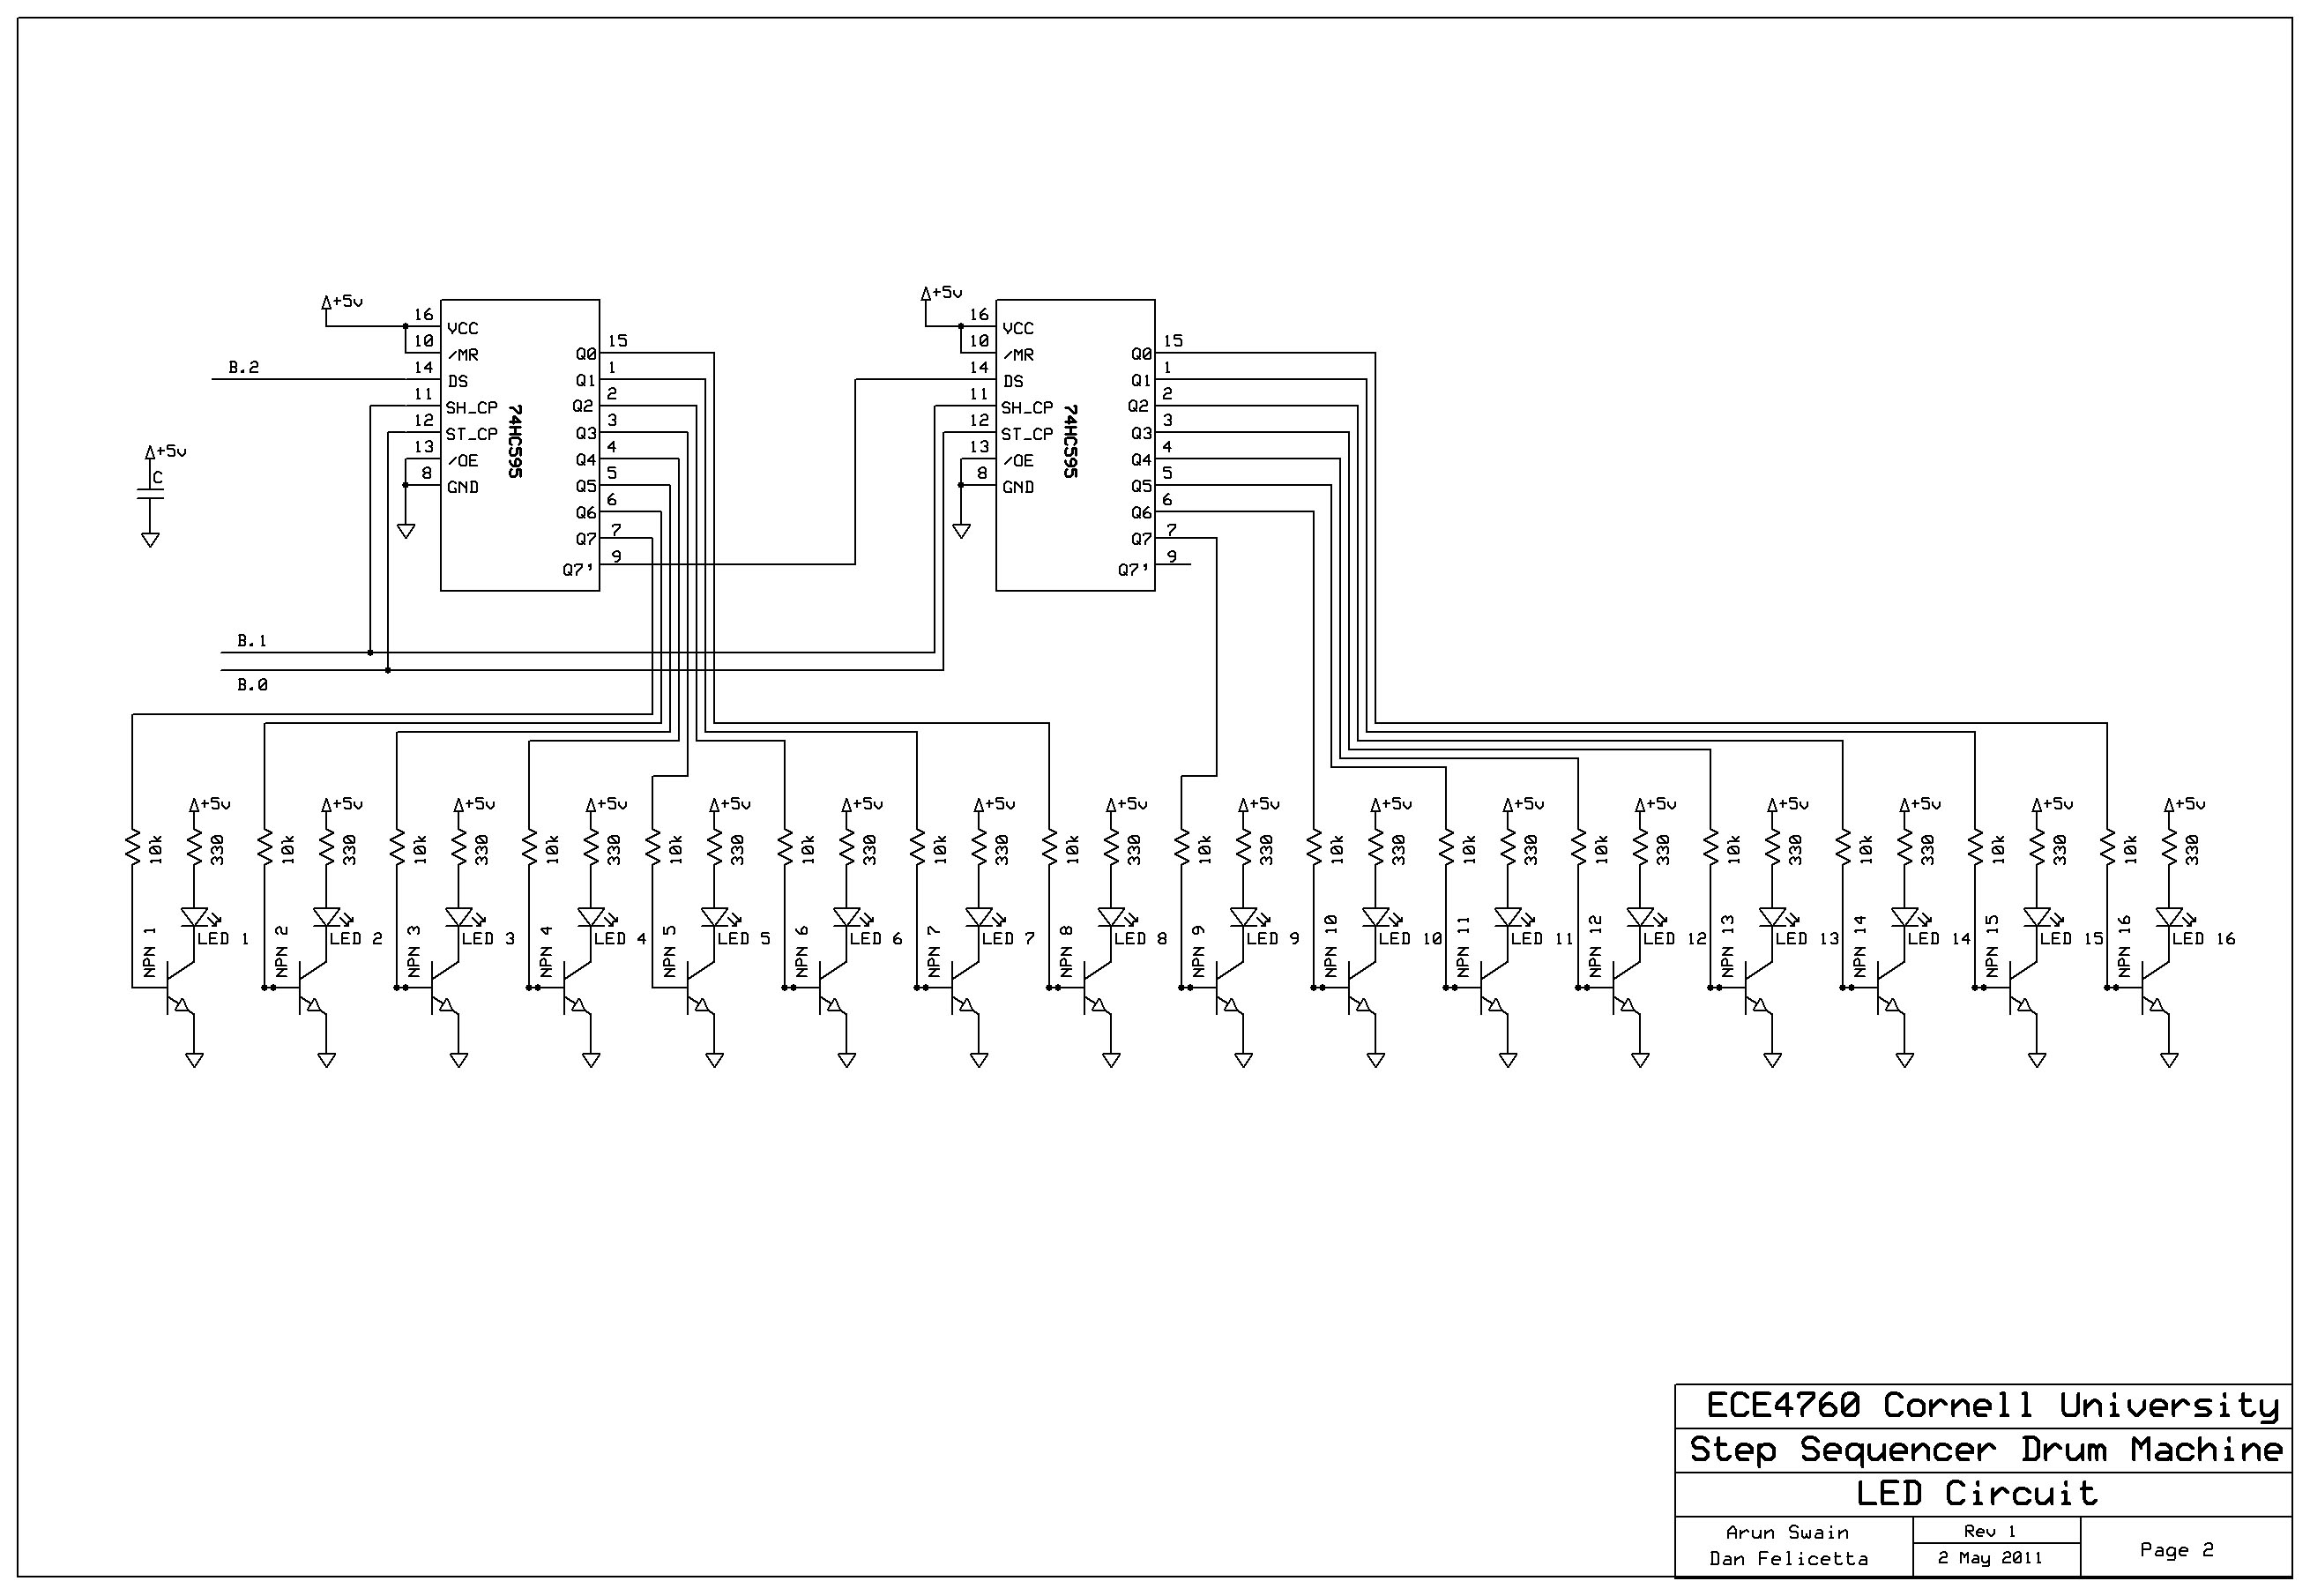 Step Sequencer Drum Machine Ece 4760 Cornell University Ic 4017 Circuits And Projects 16 Schematic Page 2